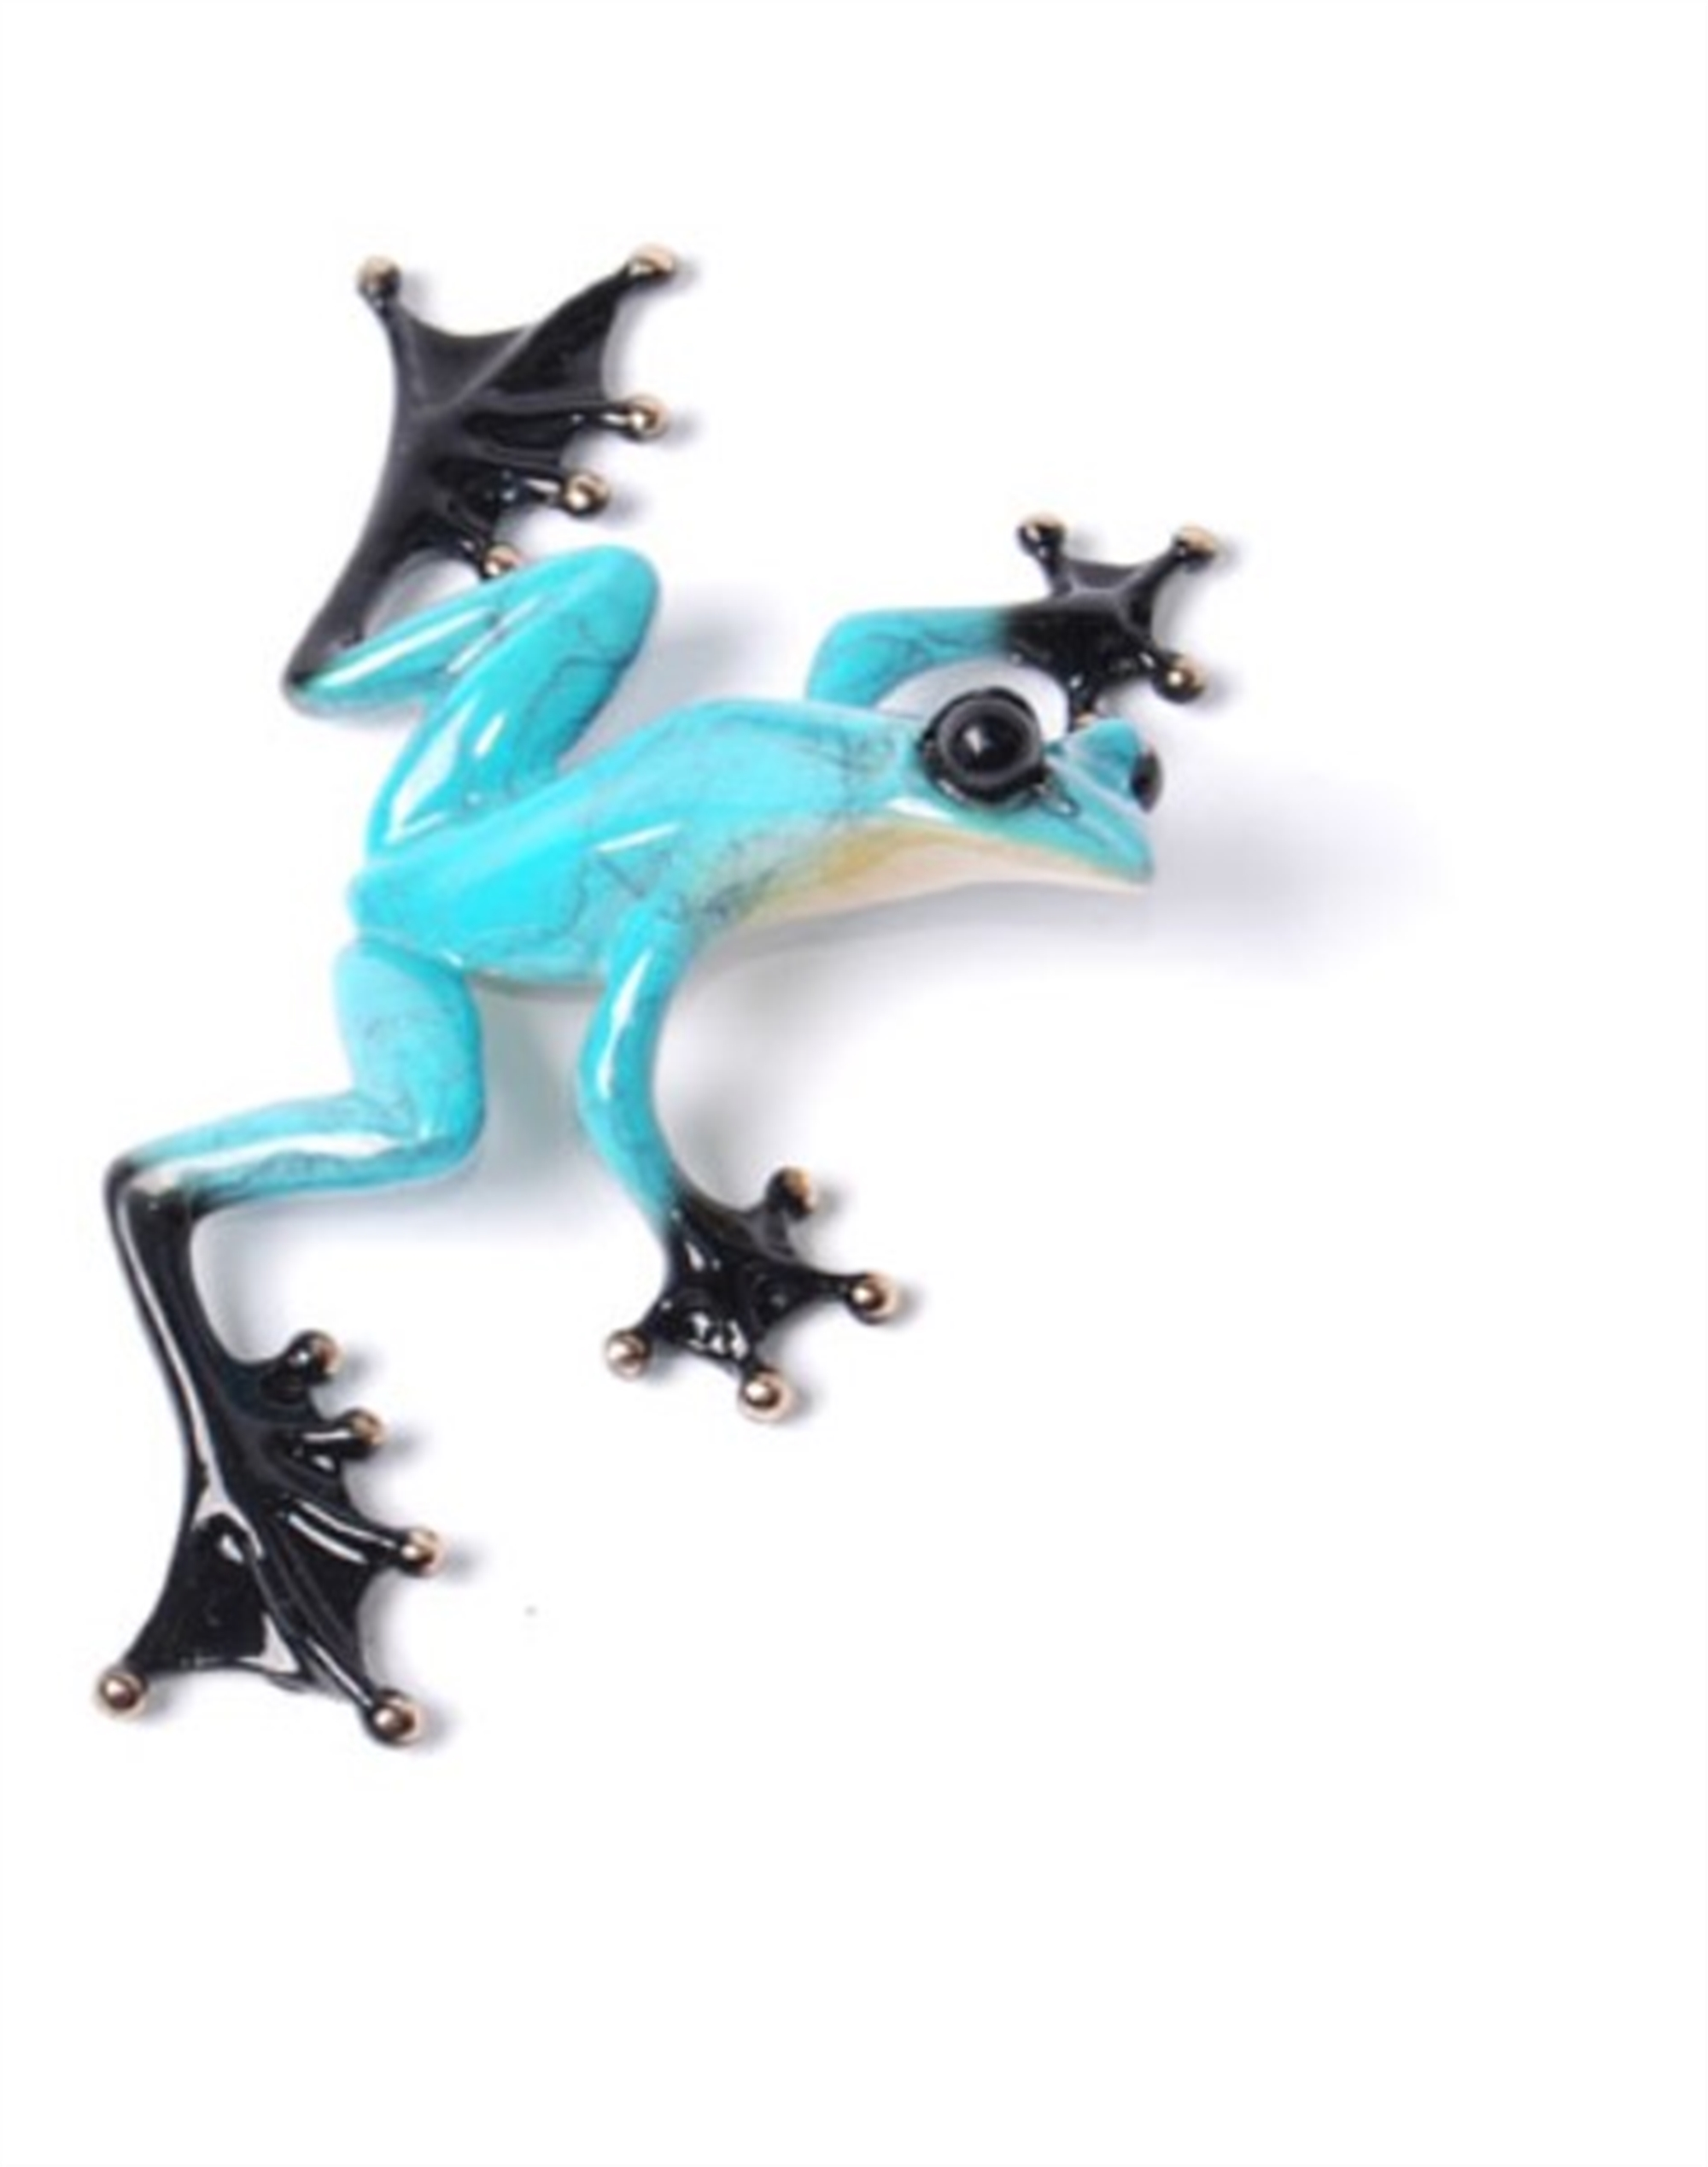 Scooter by The Frogman